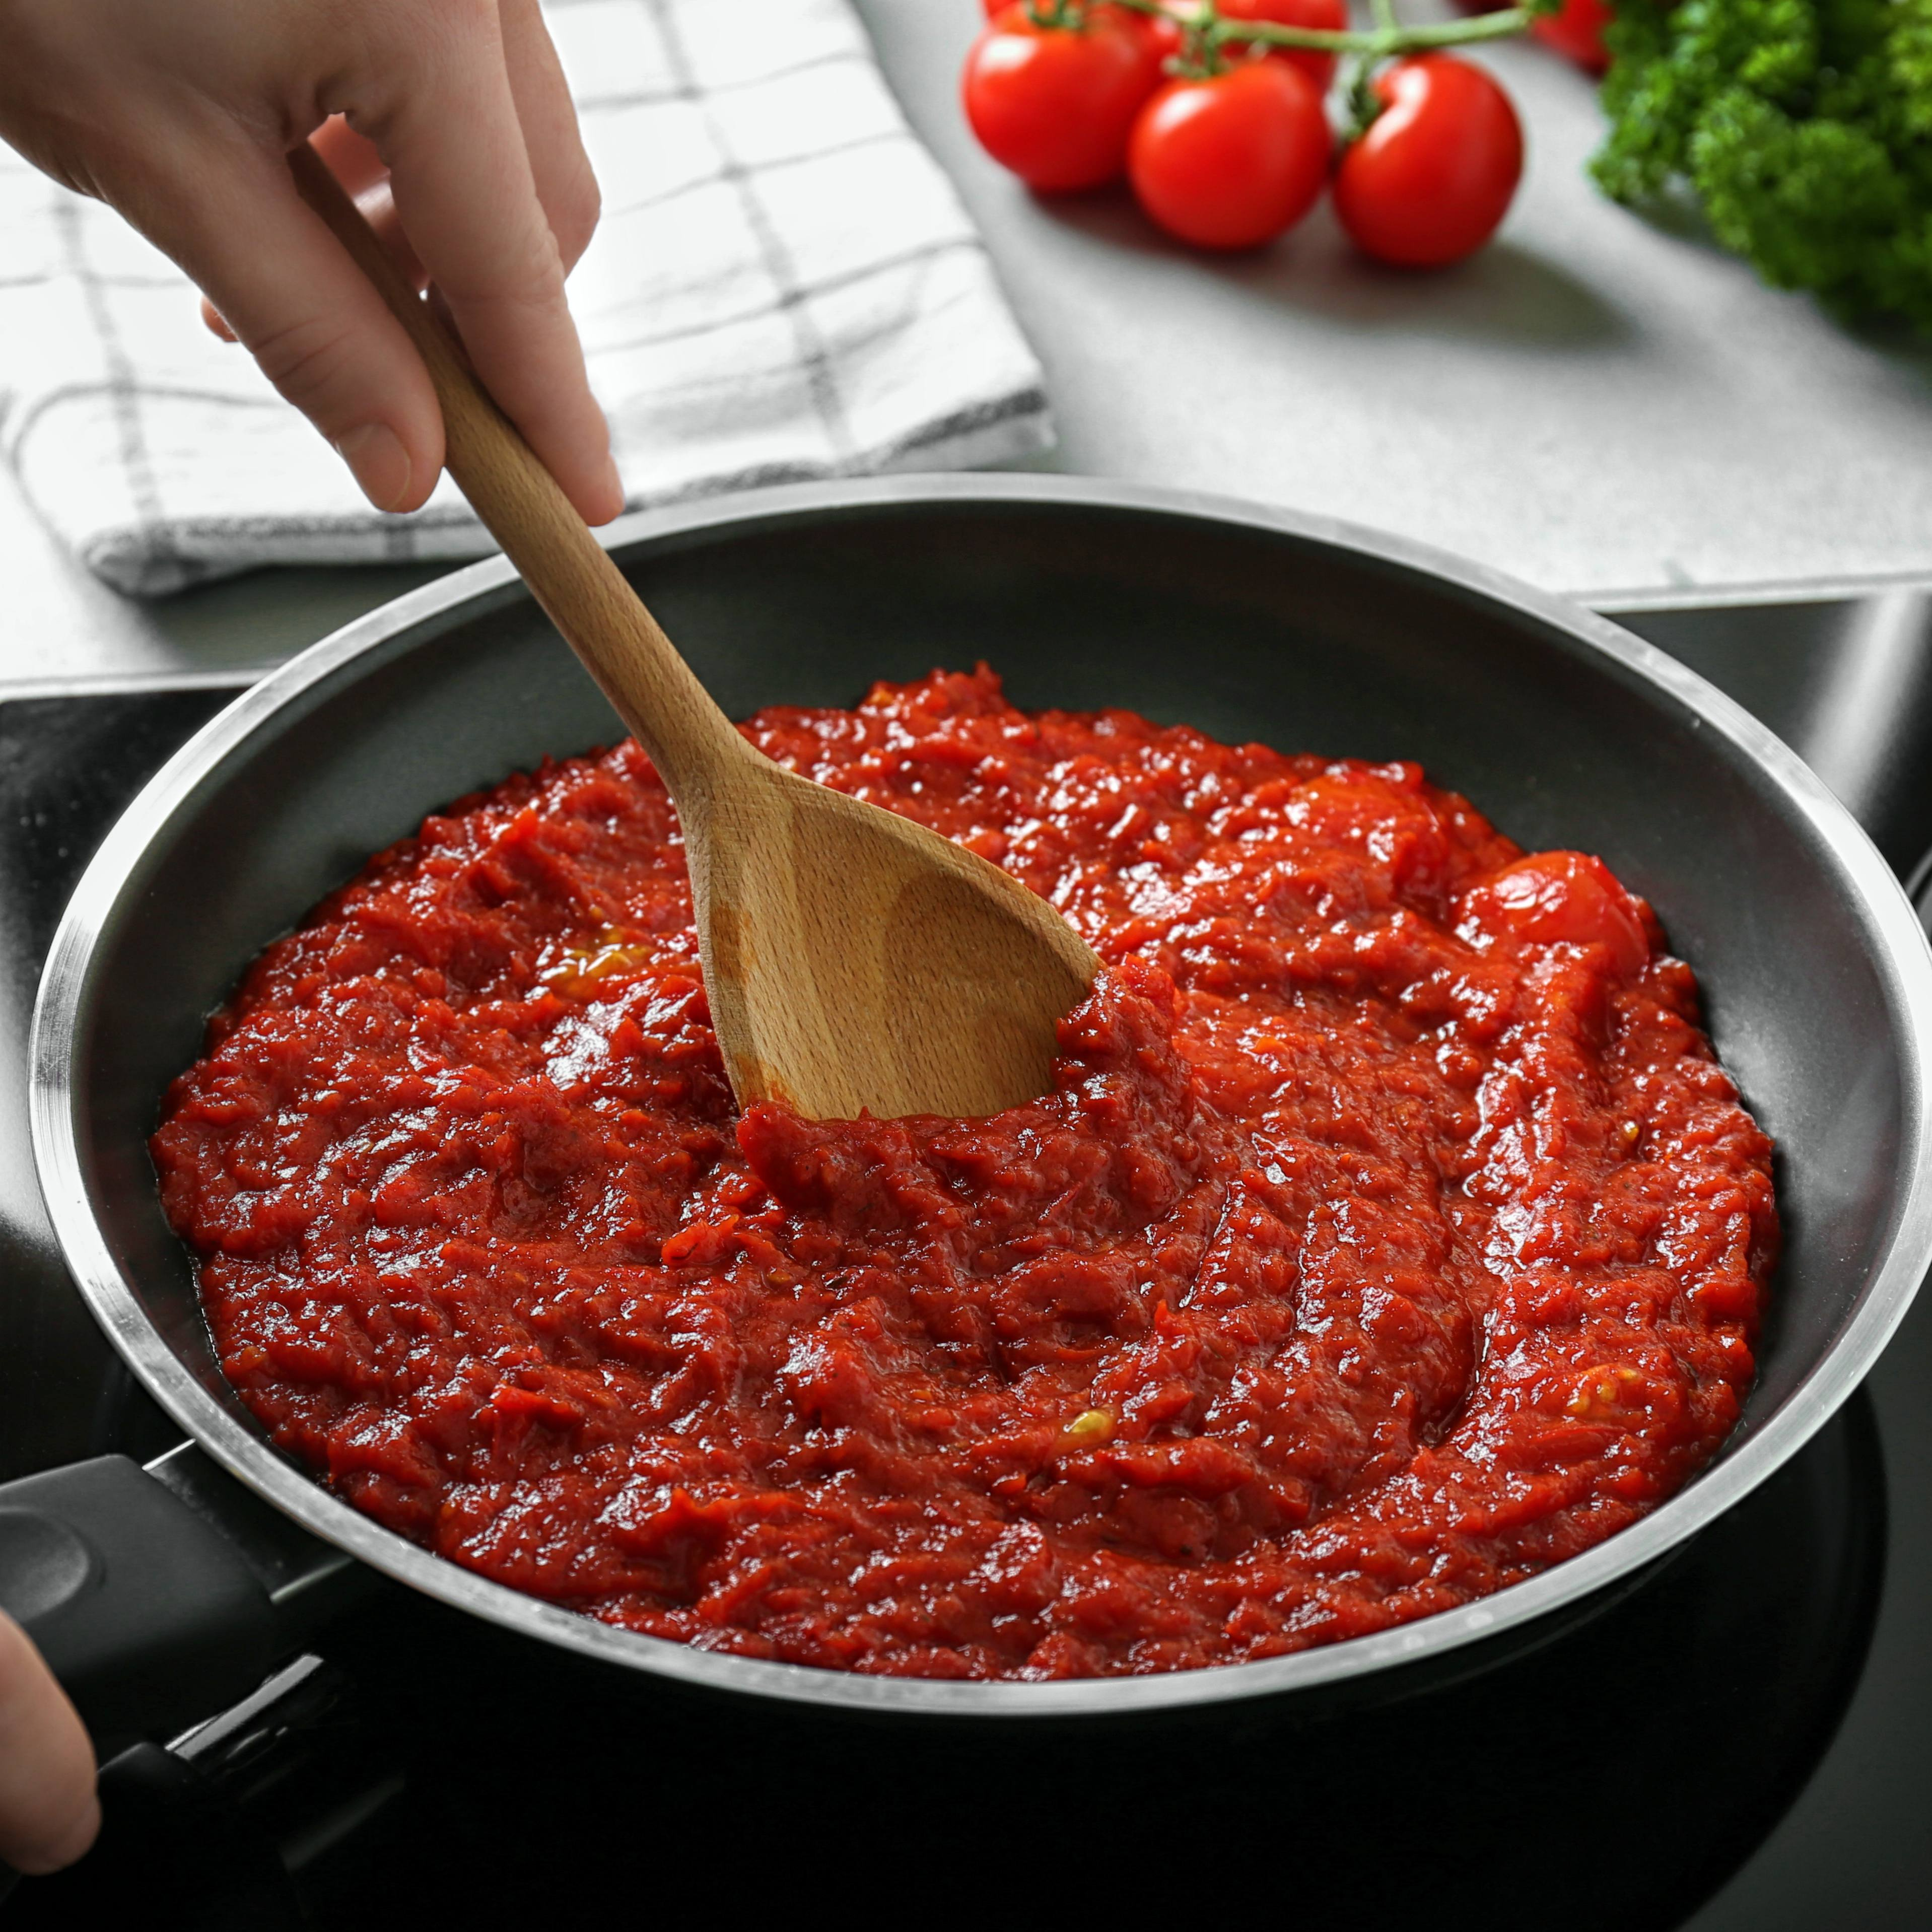 close up of a large frying pan with person at the stove cooking, stirring a red spaghetti or marinara sauce